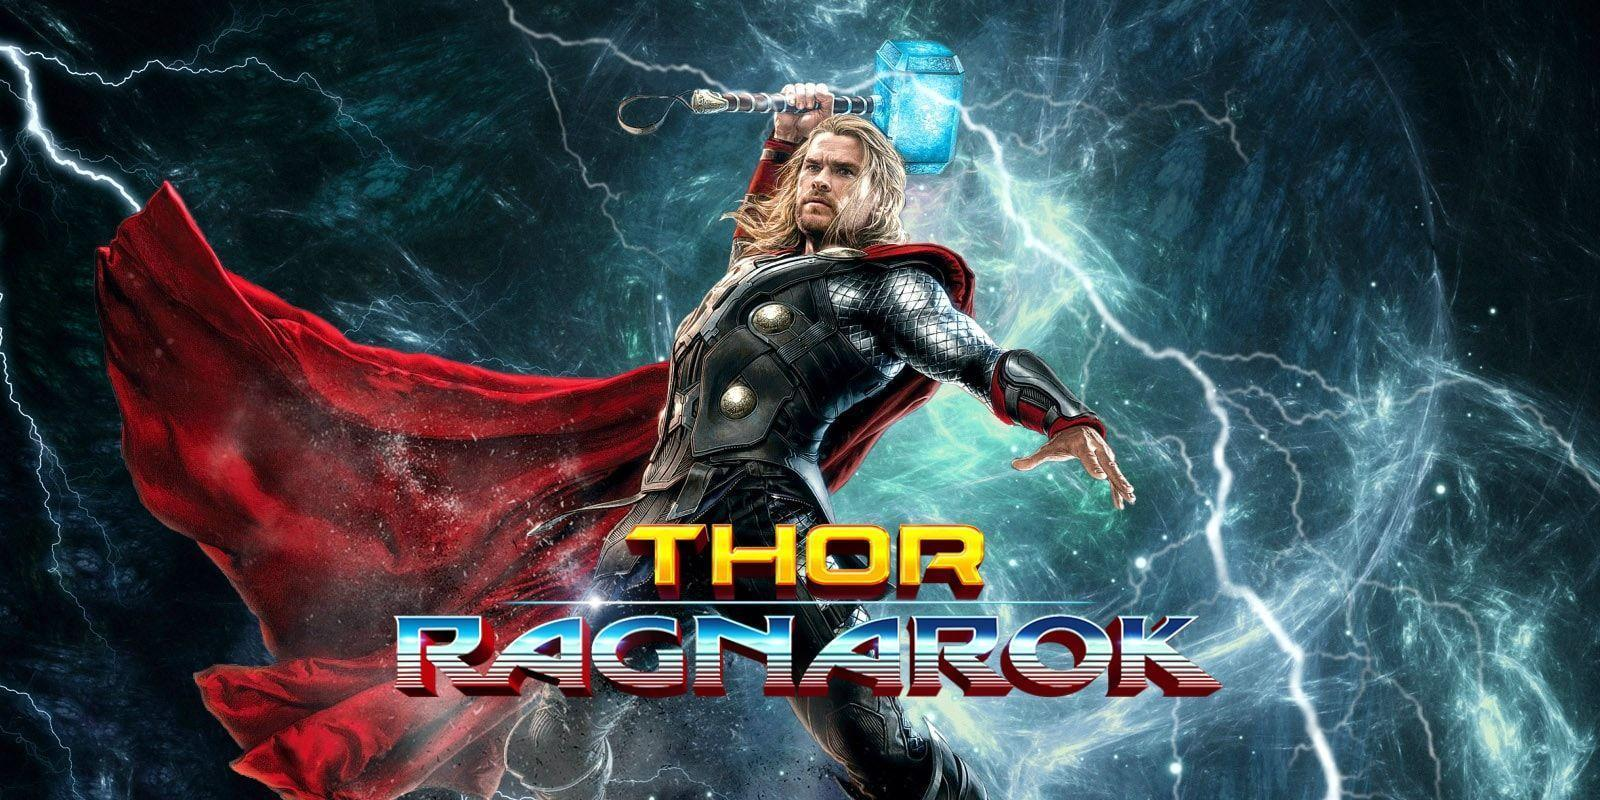 Thor: Ragnarok HD Desktop Wallpapers | 7wallpapers.net